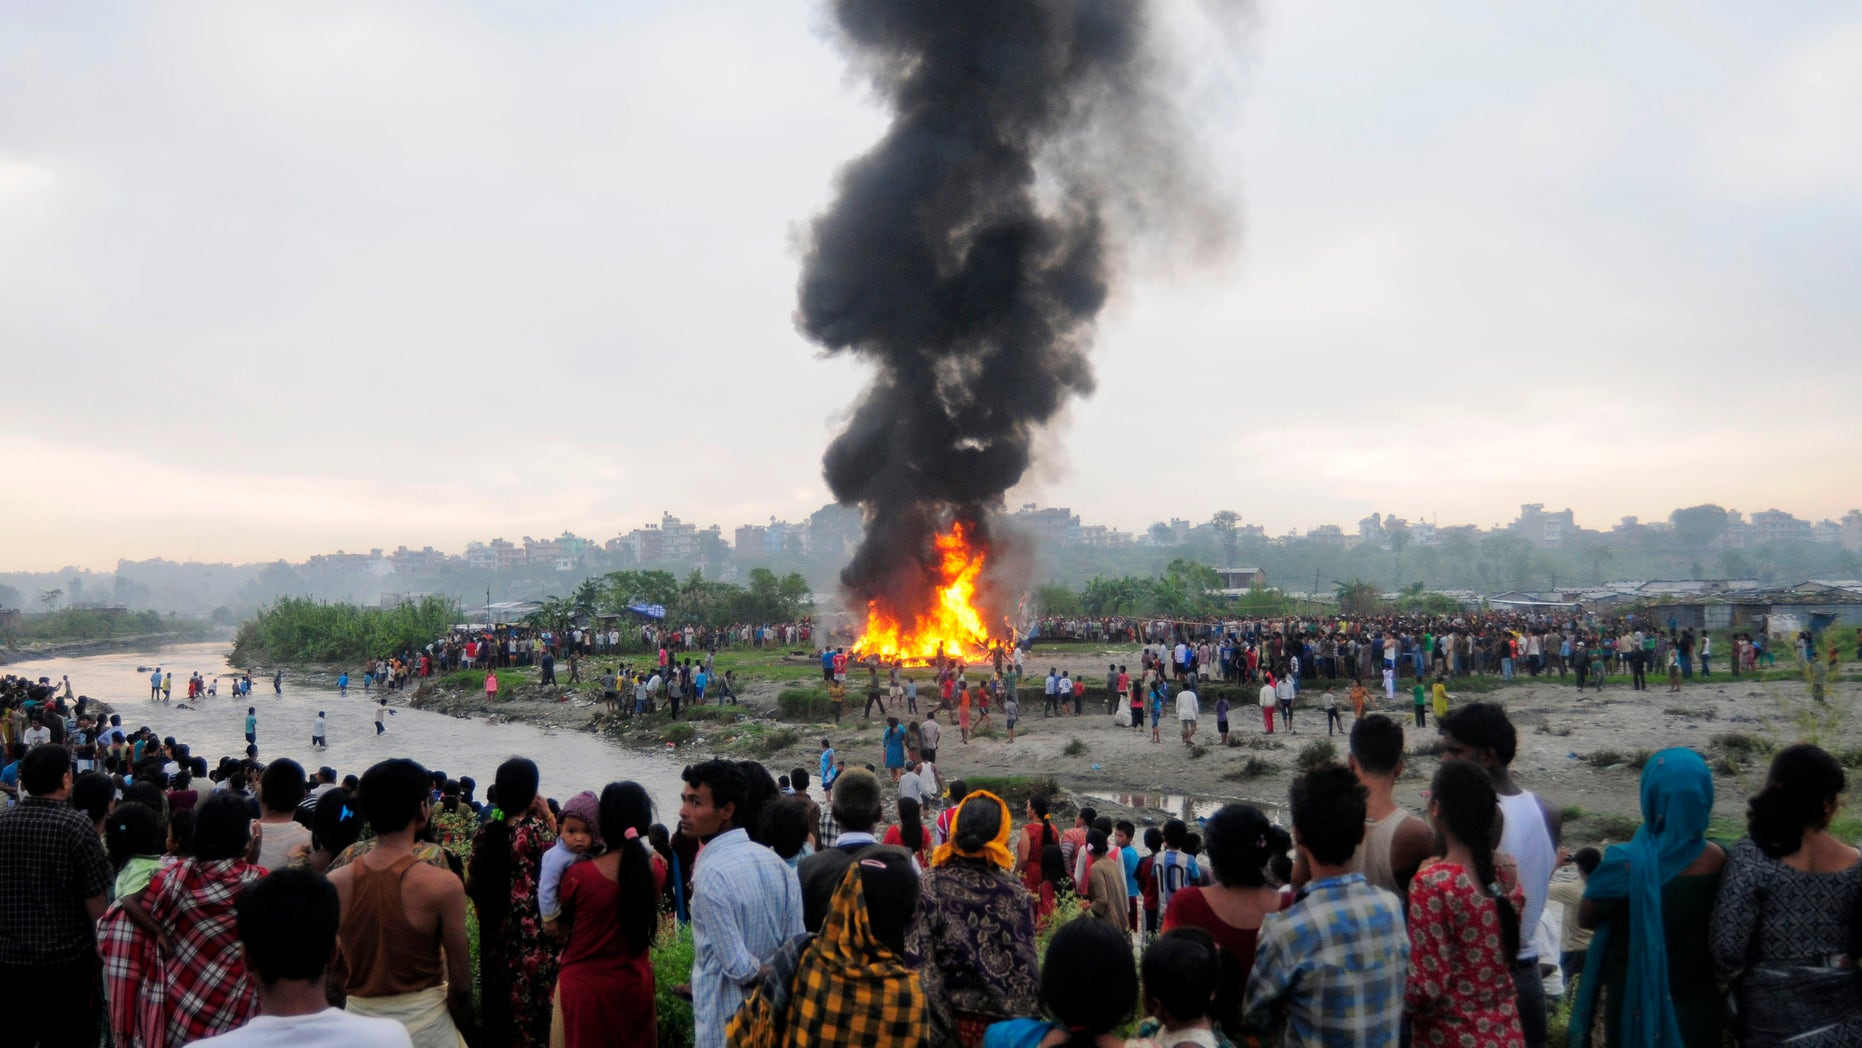 Nepalese gather around the burning wreckage at the crash site of a Sita Air airplane near Katmandu, Nepal, early Friday, Sept. 28, 2012. The plane carrying trekkers into the Everest region crashed Friday morning in Nepal's capital, and all 19 people on board are believed dead, authorities said. Thirteen people on board were foreigners, while three passengers and the three crew members were from Nepal, said Katmandu airport chief Narayan Bastakoti. (AP Photo)